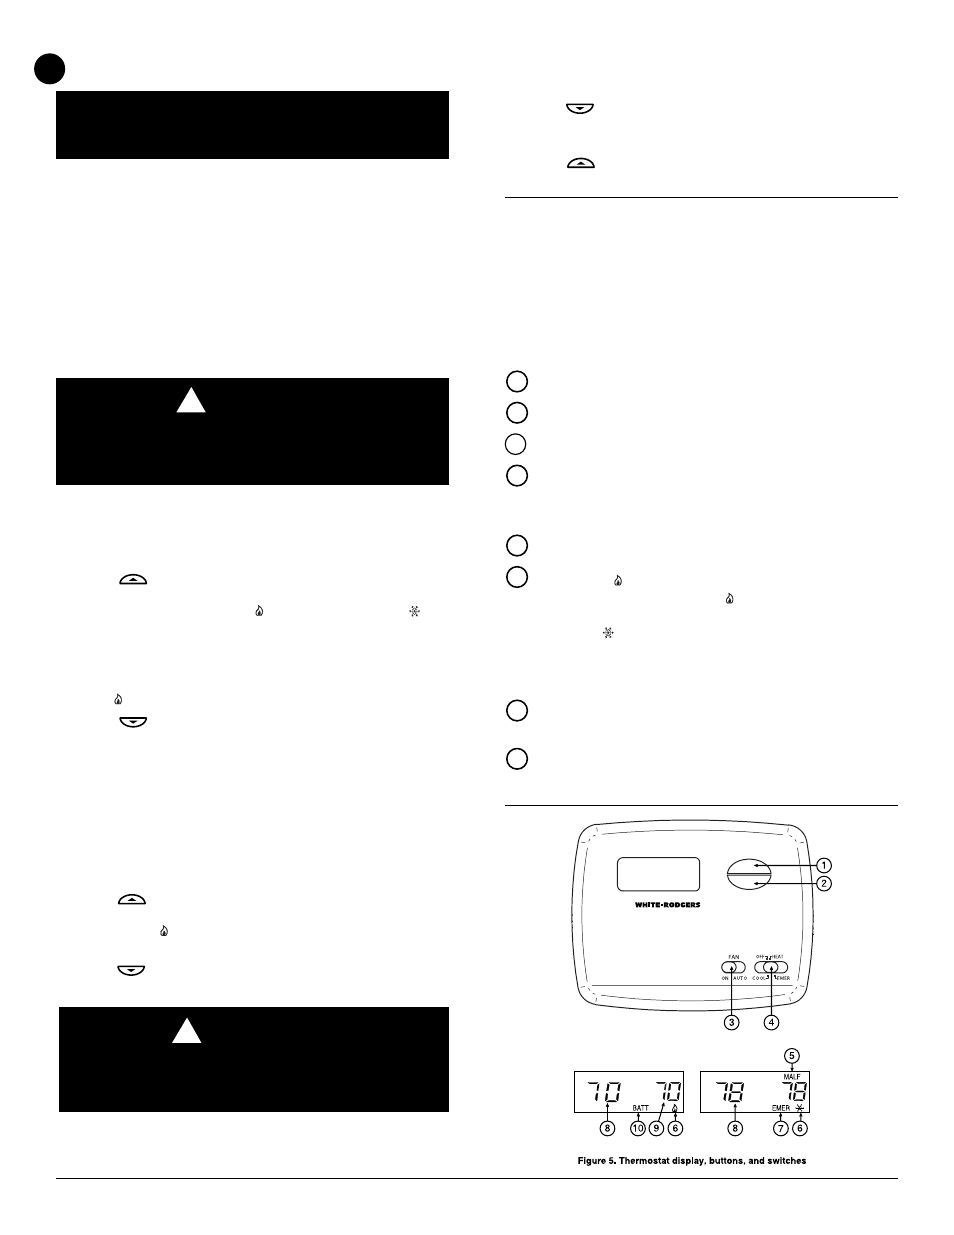 Caution check thermostat operation white rodgers 1f79 user caution check thermostat operation white rodgers 1f79 user manual page 4 6 biocorpaavc Choice Image